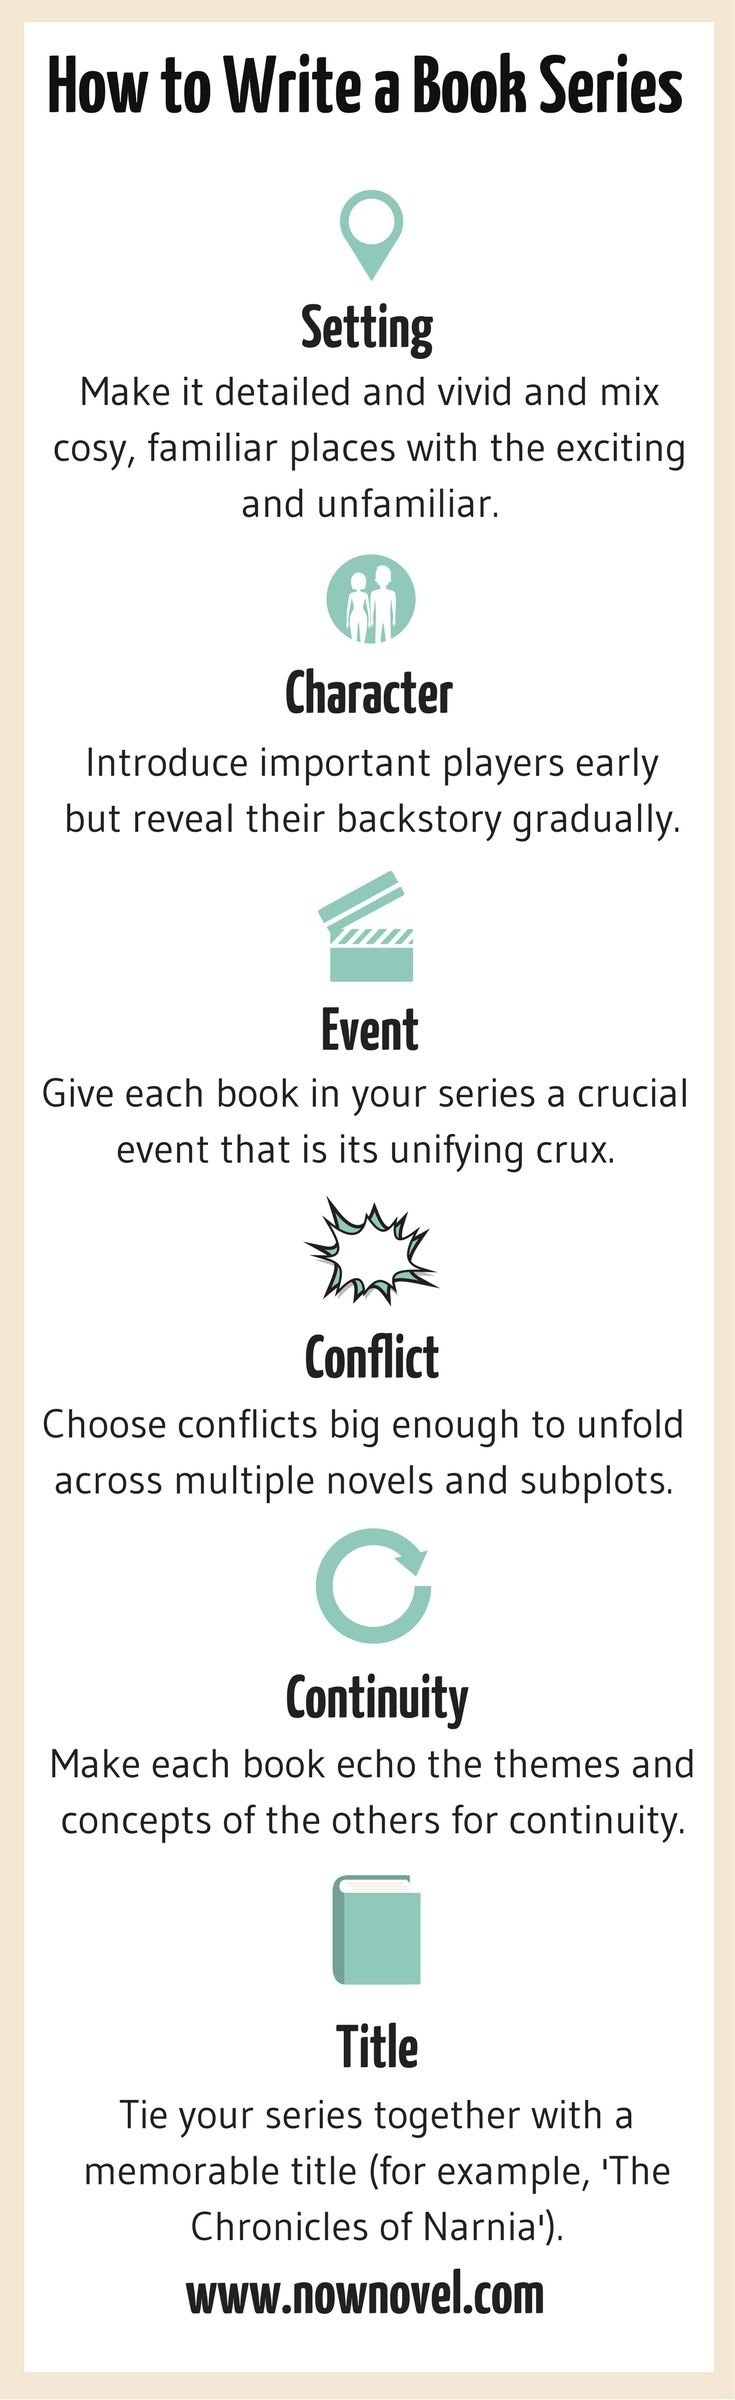 10 Attractive Good Ideas For Writing A Book 257 best write it images on pinterest handwriting ideas story 2020